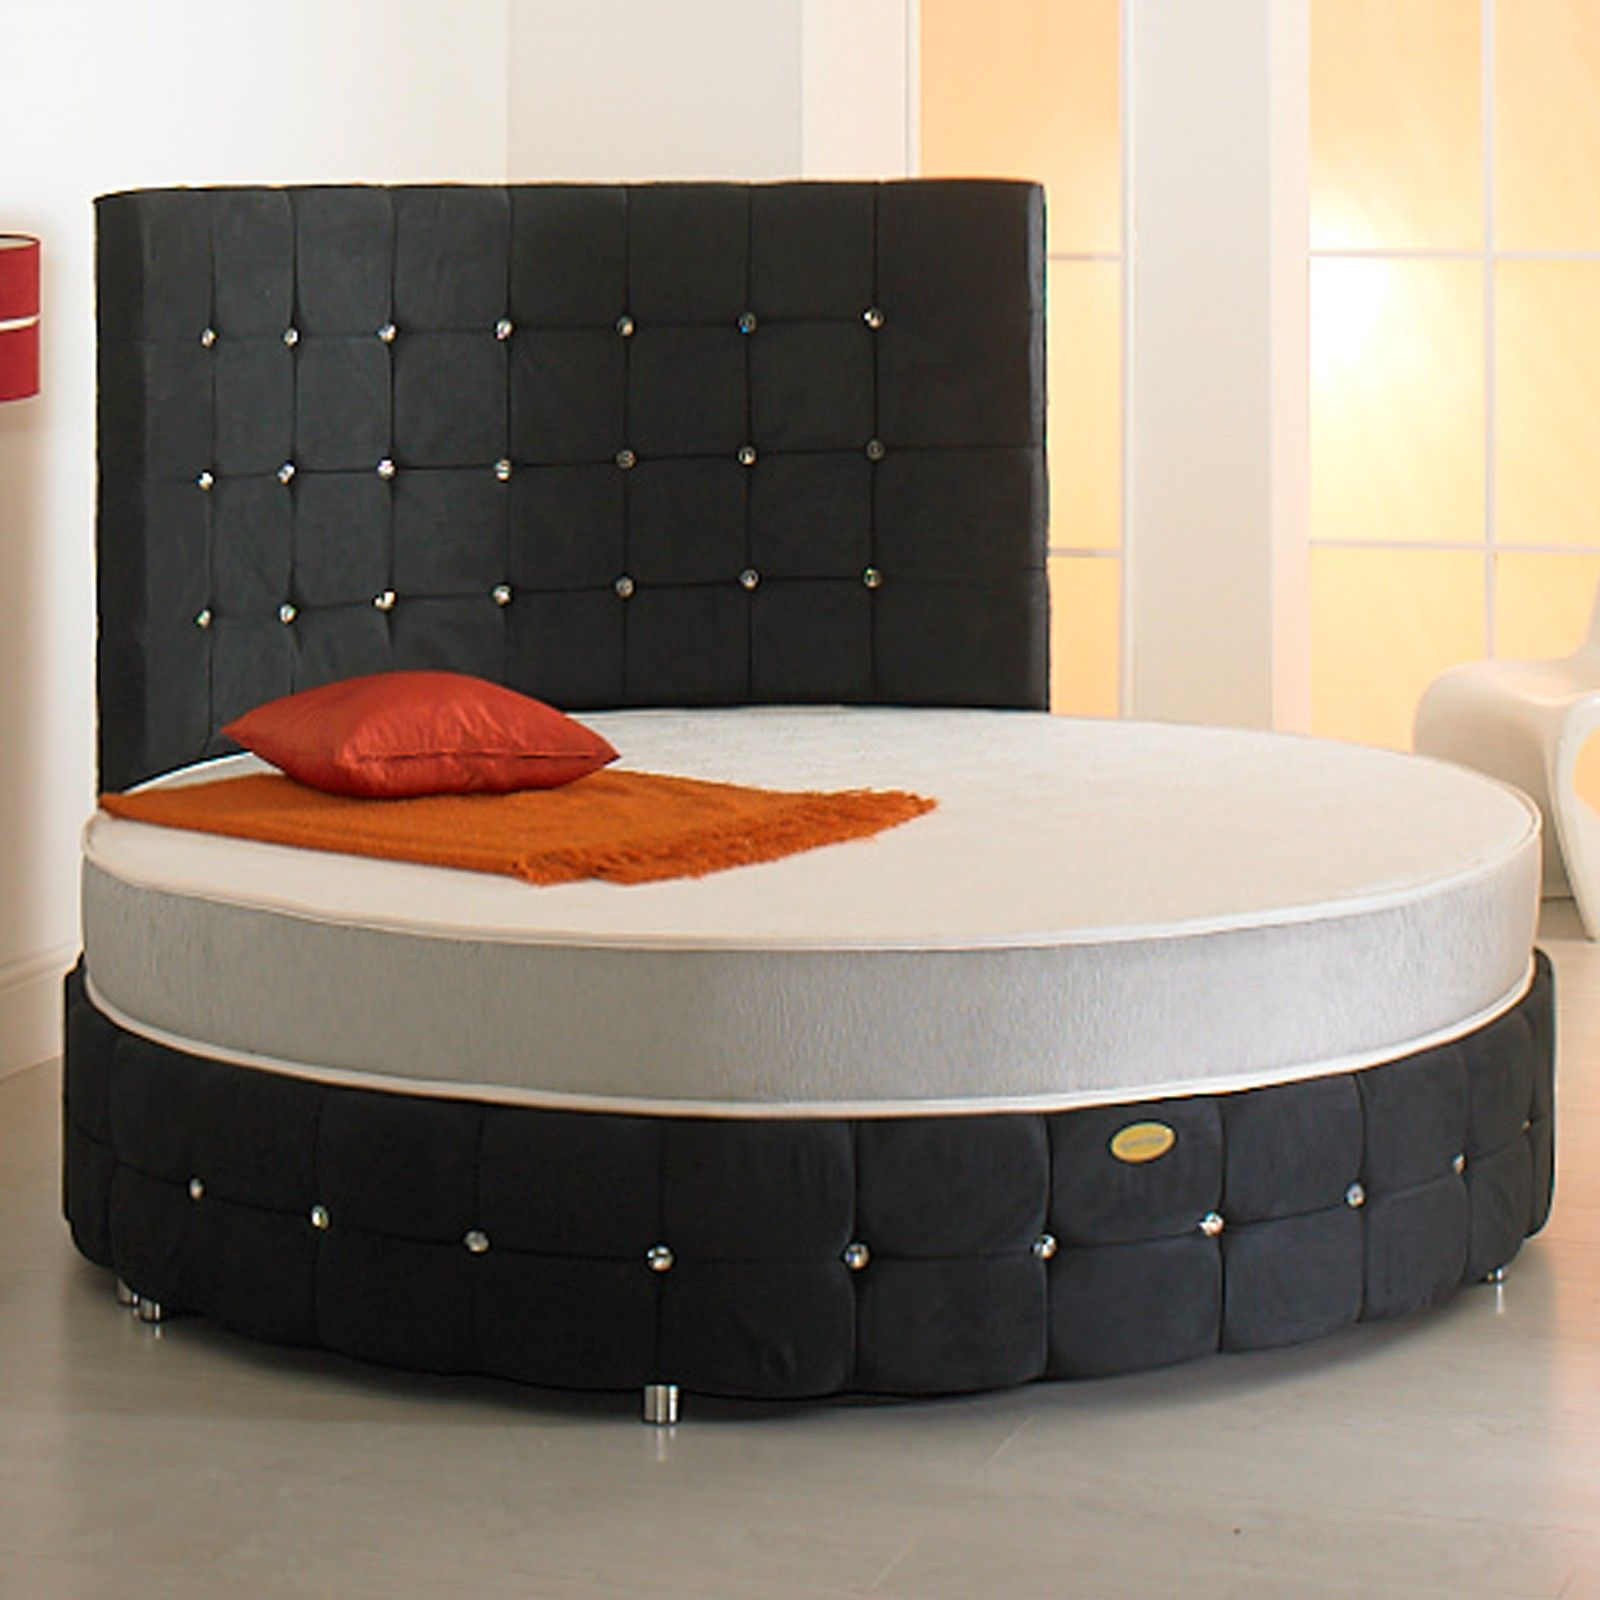 Amusing Cheap Round Beds Gallery Best inspiration home design